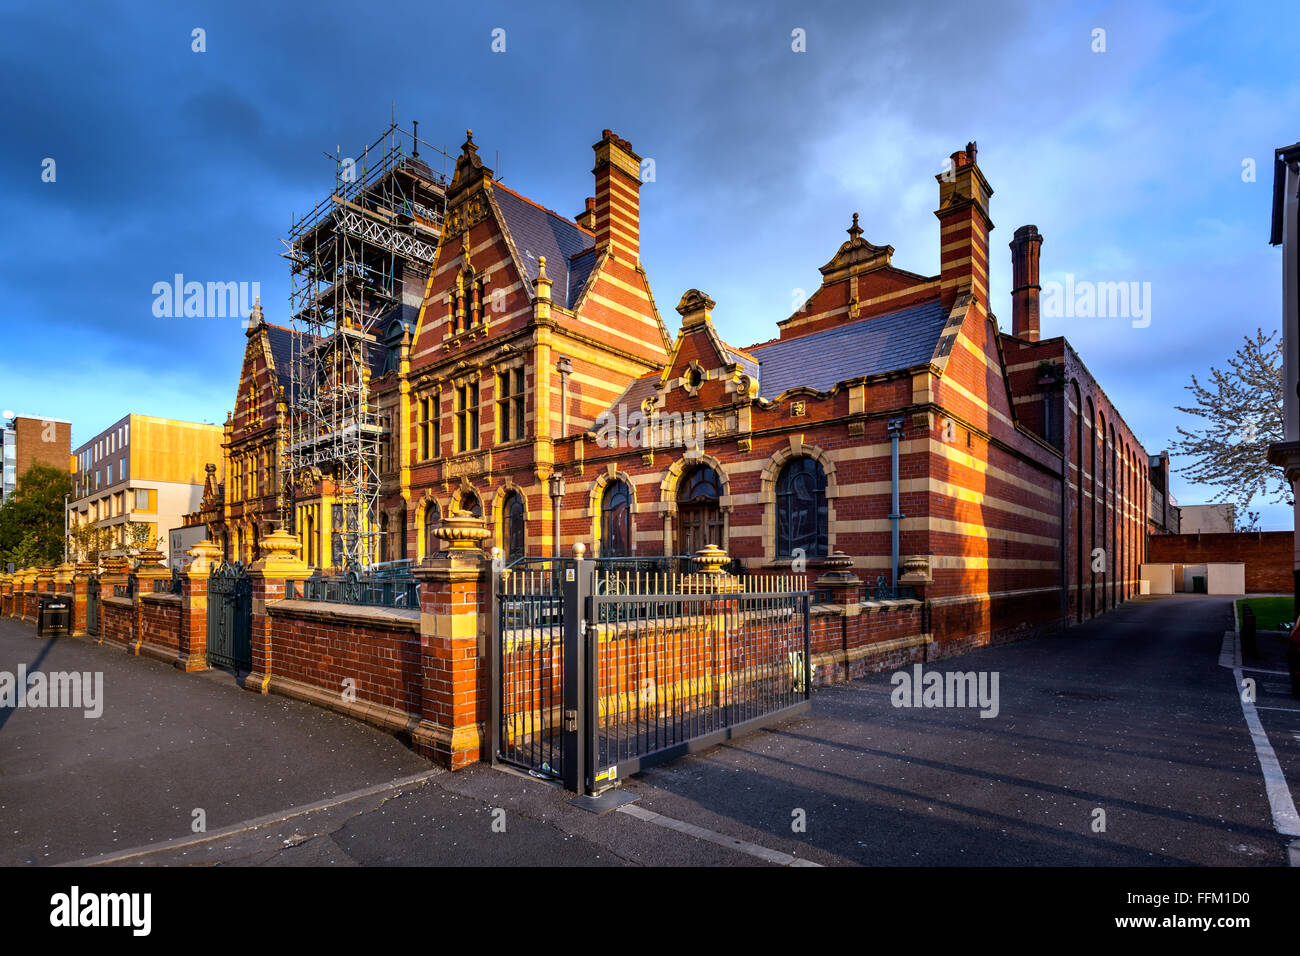 Victoria Baths is the grade 2 listed building in Manchester, England. - Stock Image